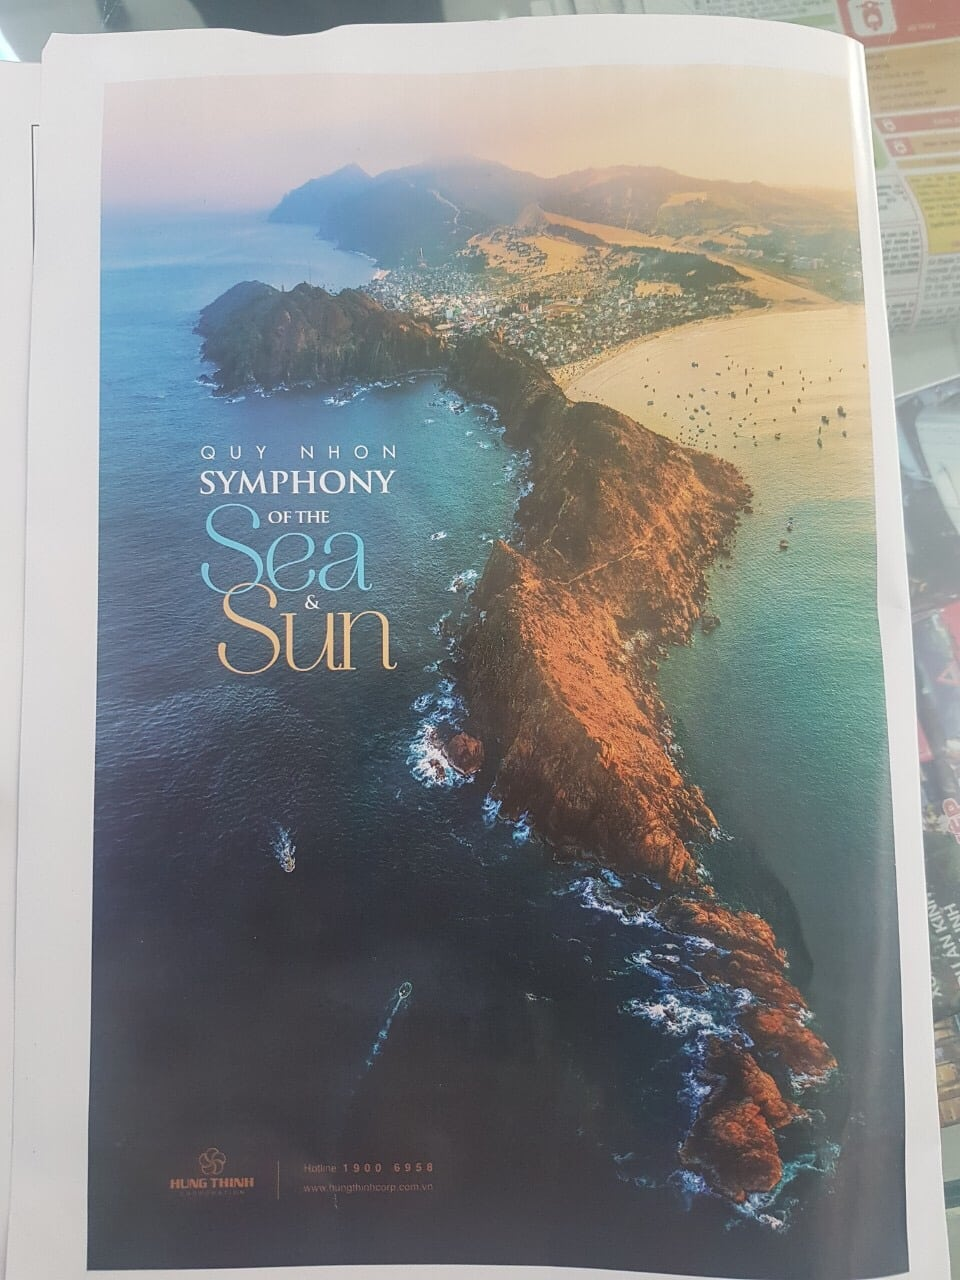 quy nhon symphony of the sun and sea